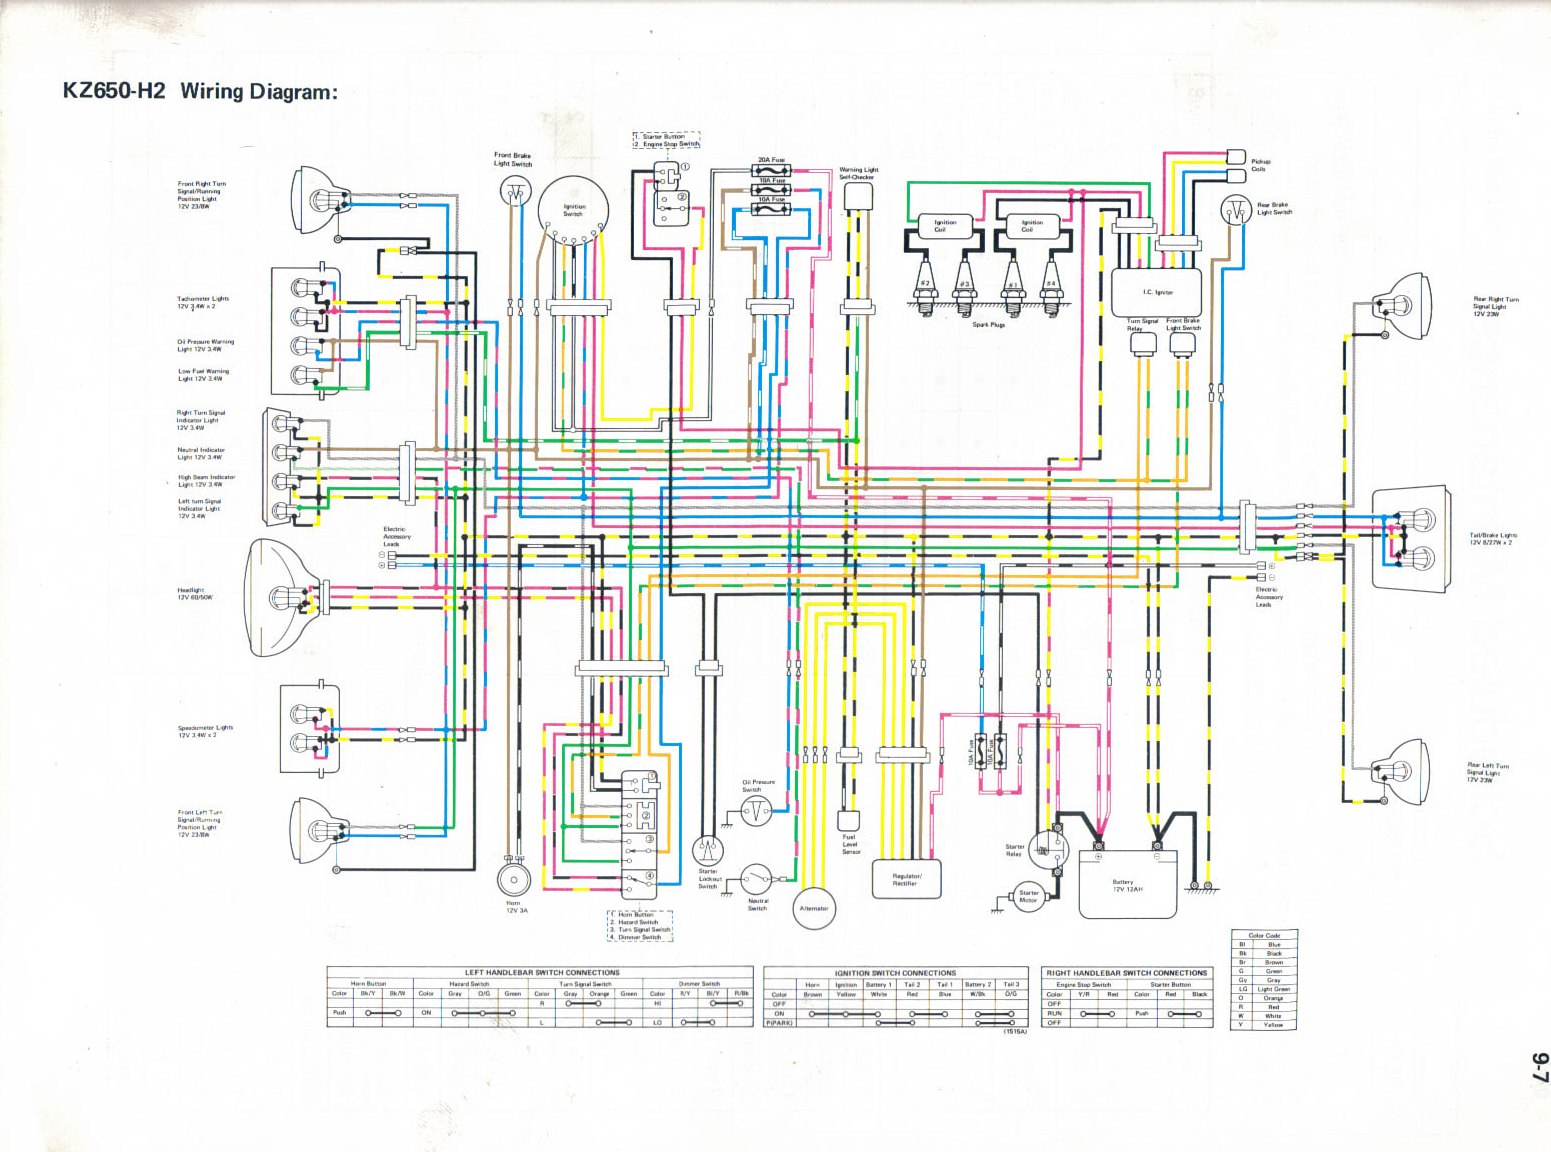 KZ650 H2 kz650 info wiring diagrams 1980 kawasaki kz440 wiring diagram at readyjetset.co